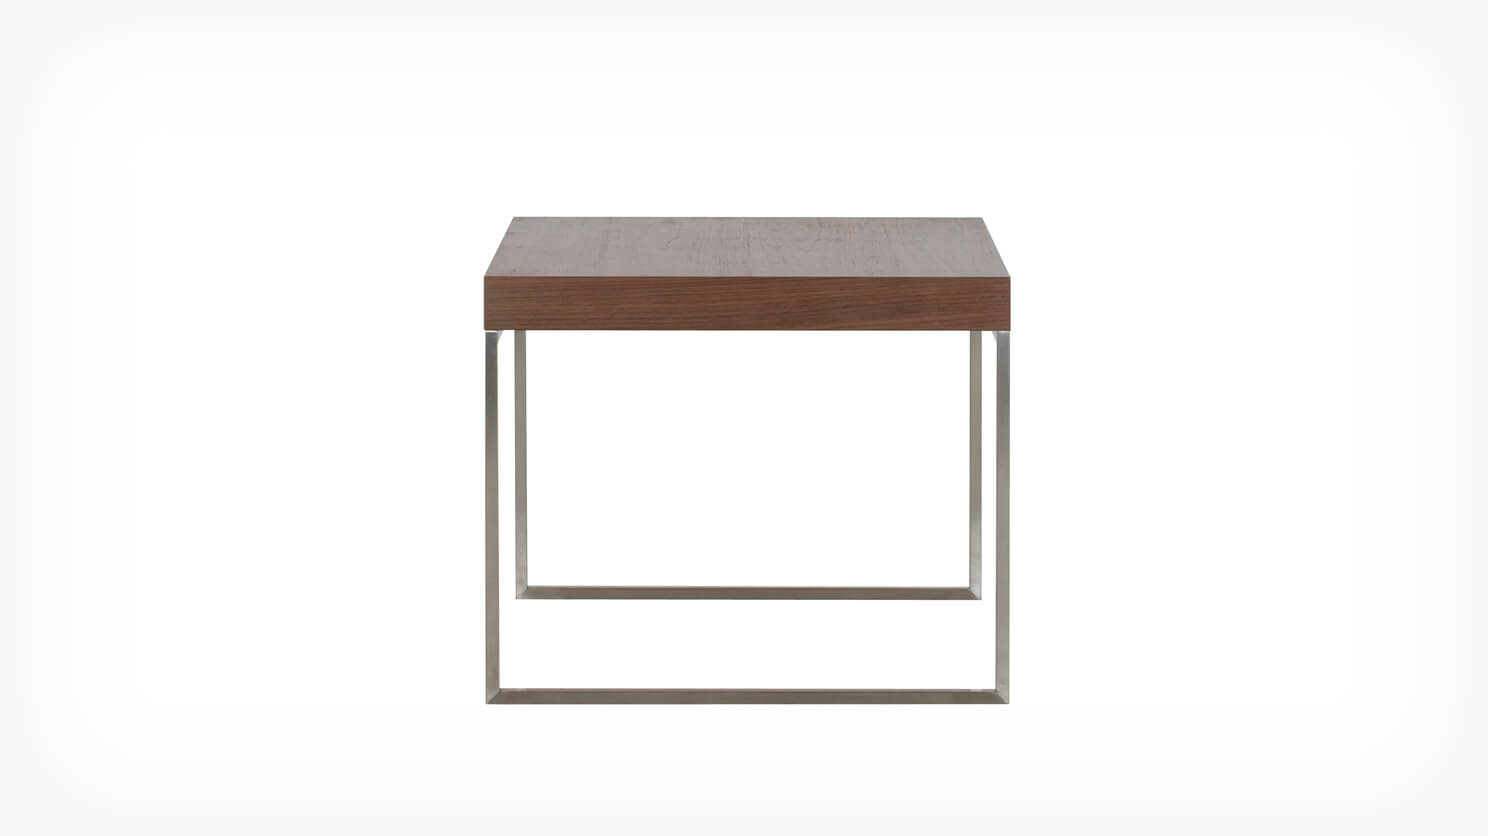 3020 043 13 3 end tables scout square end table front